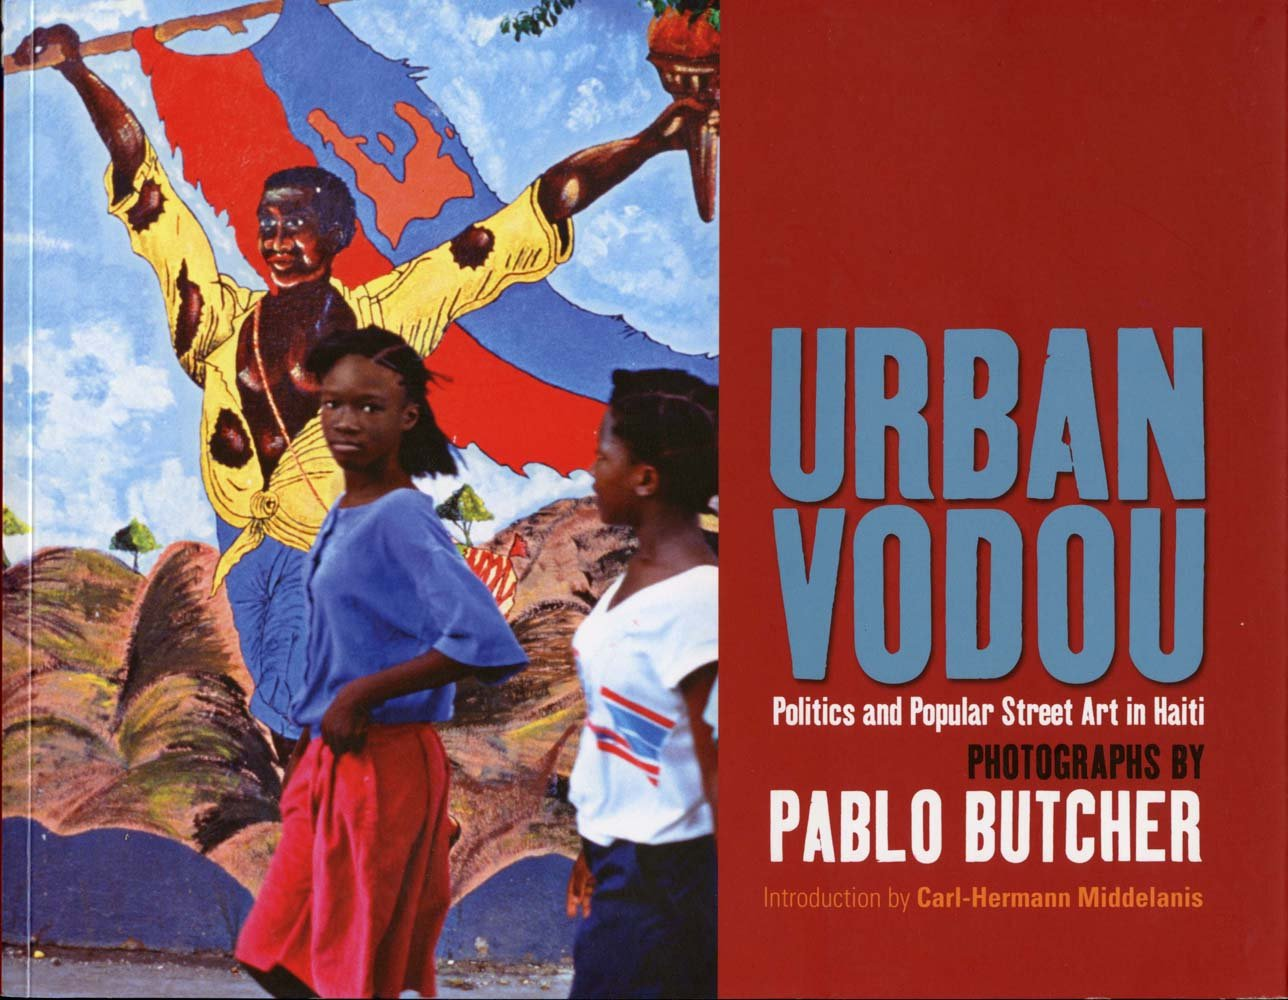 Urban Vodou: Politics and Popular Street Art in Haiti